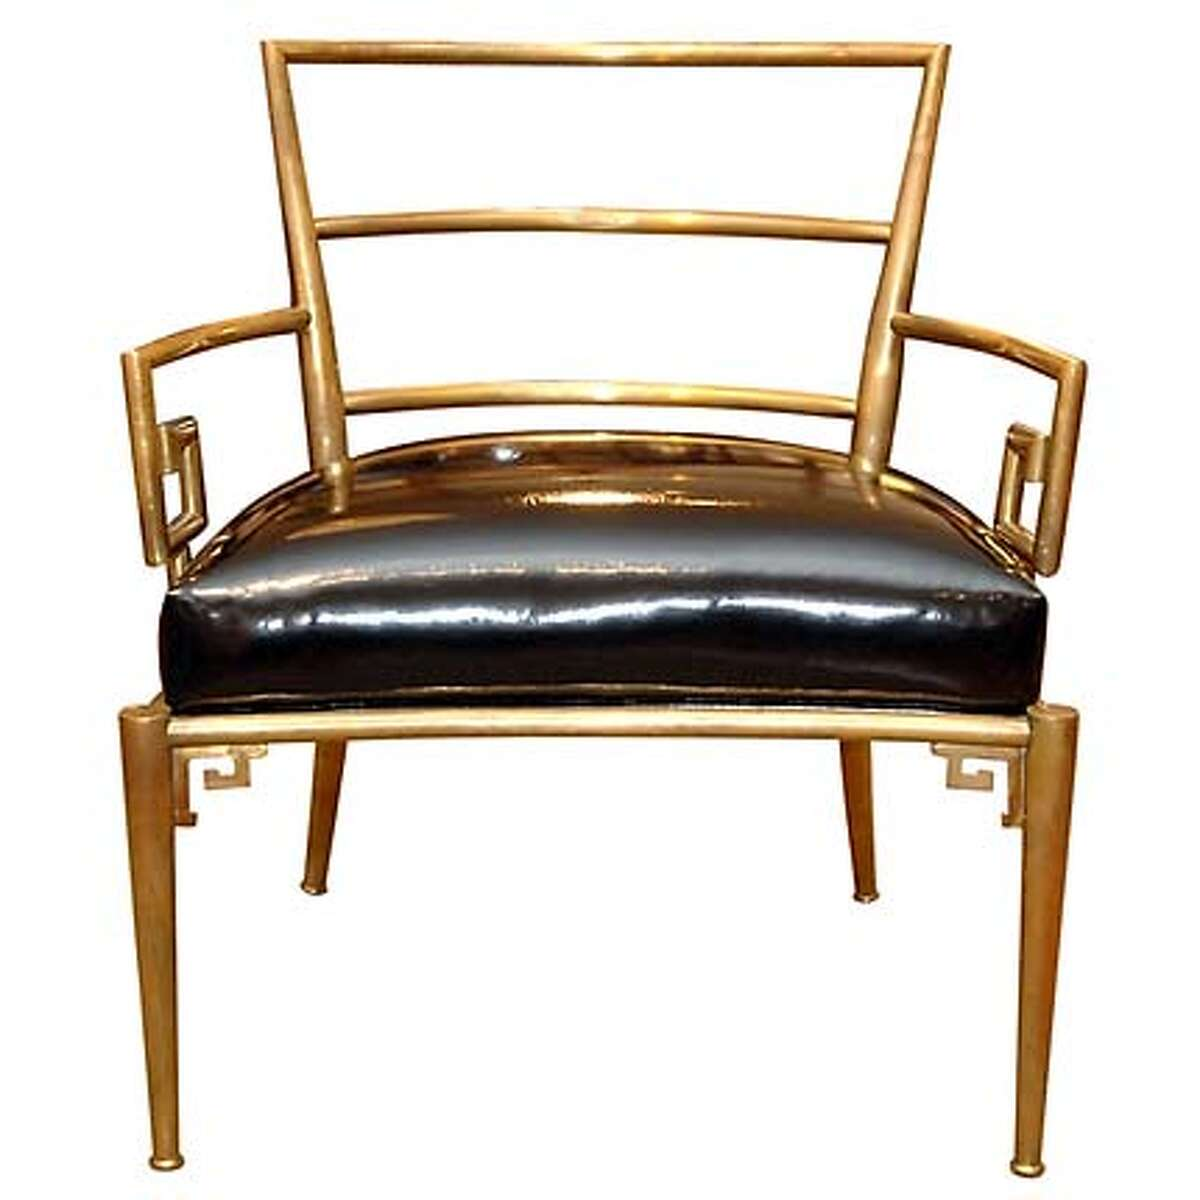 Neoclassical Italian armchair from the 1950s in brass, $3,800